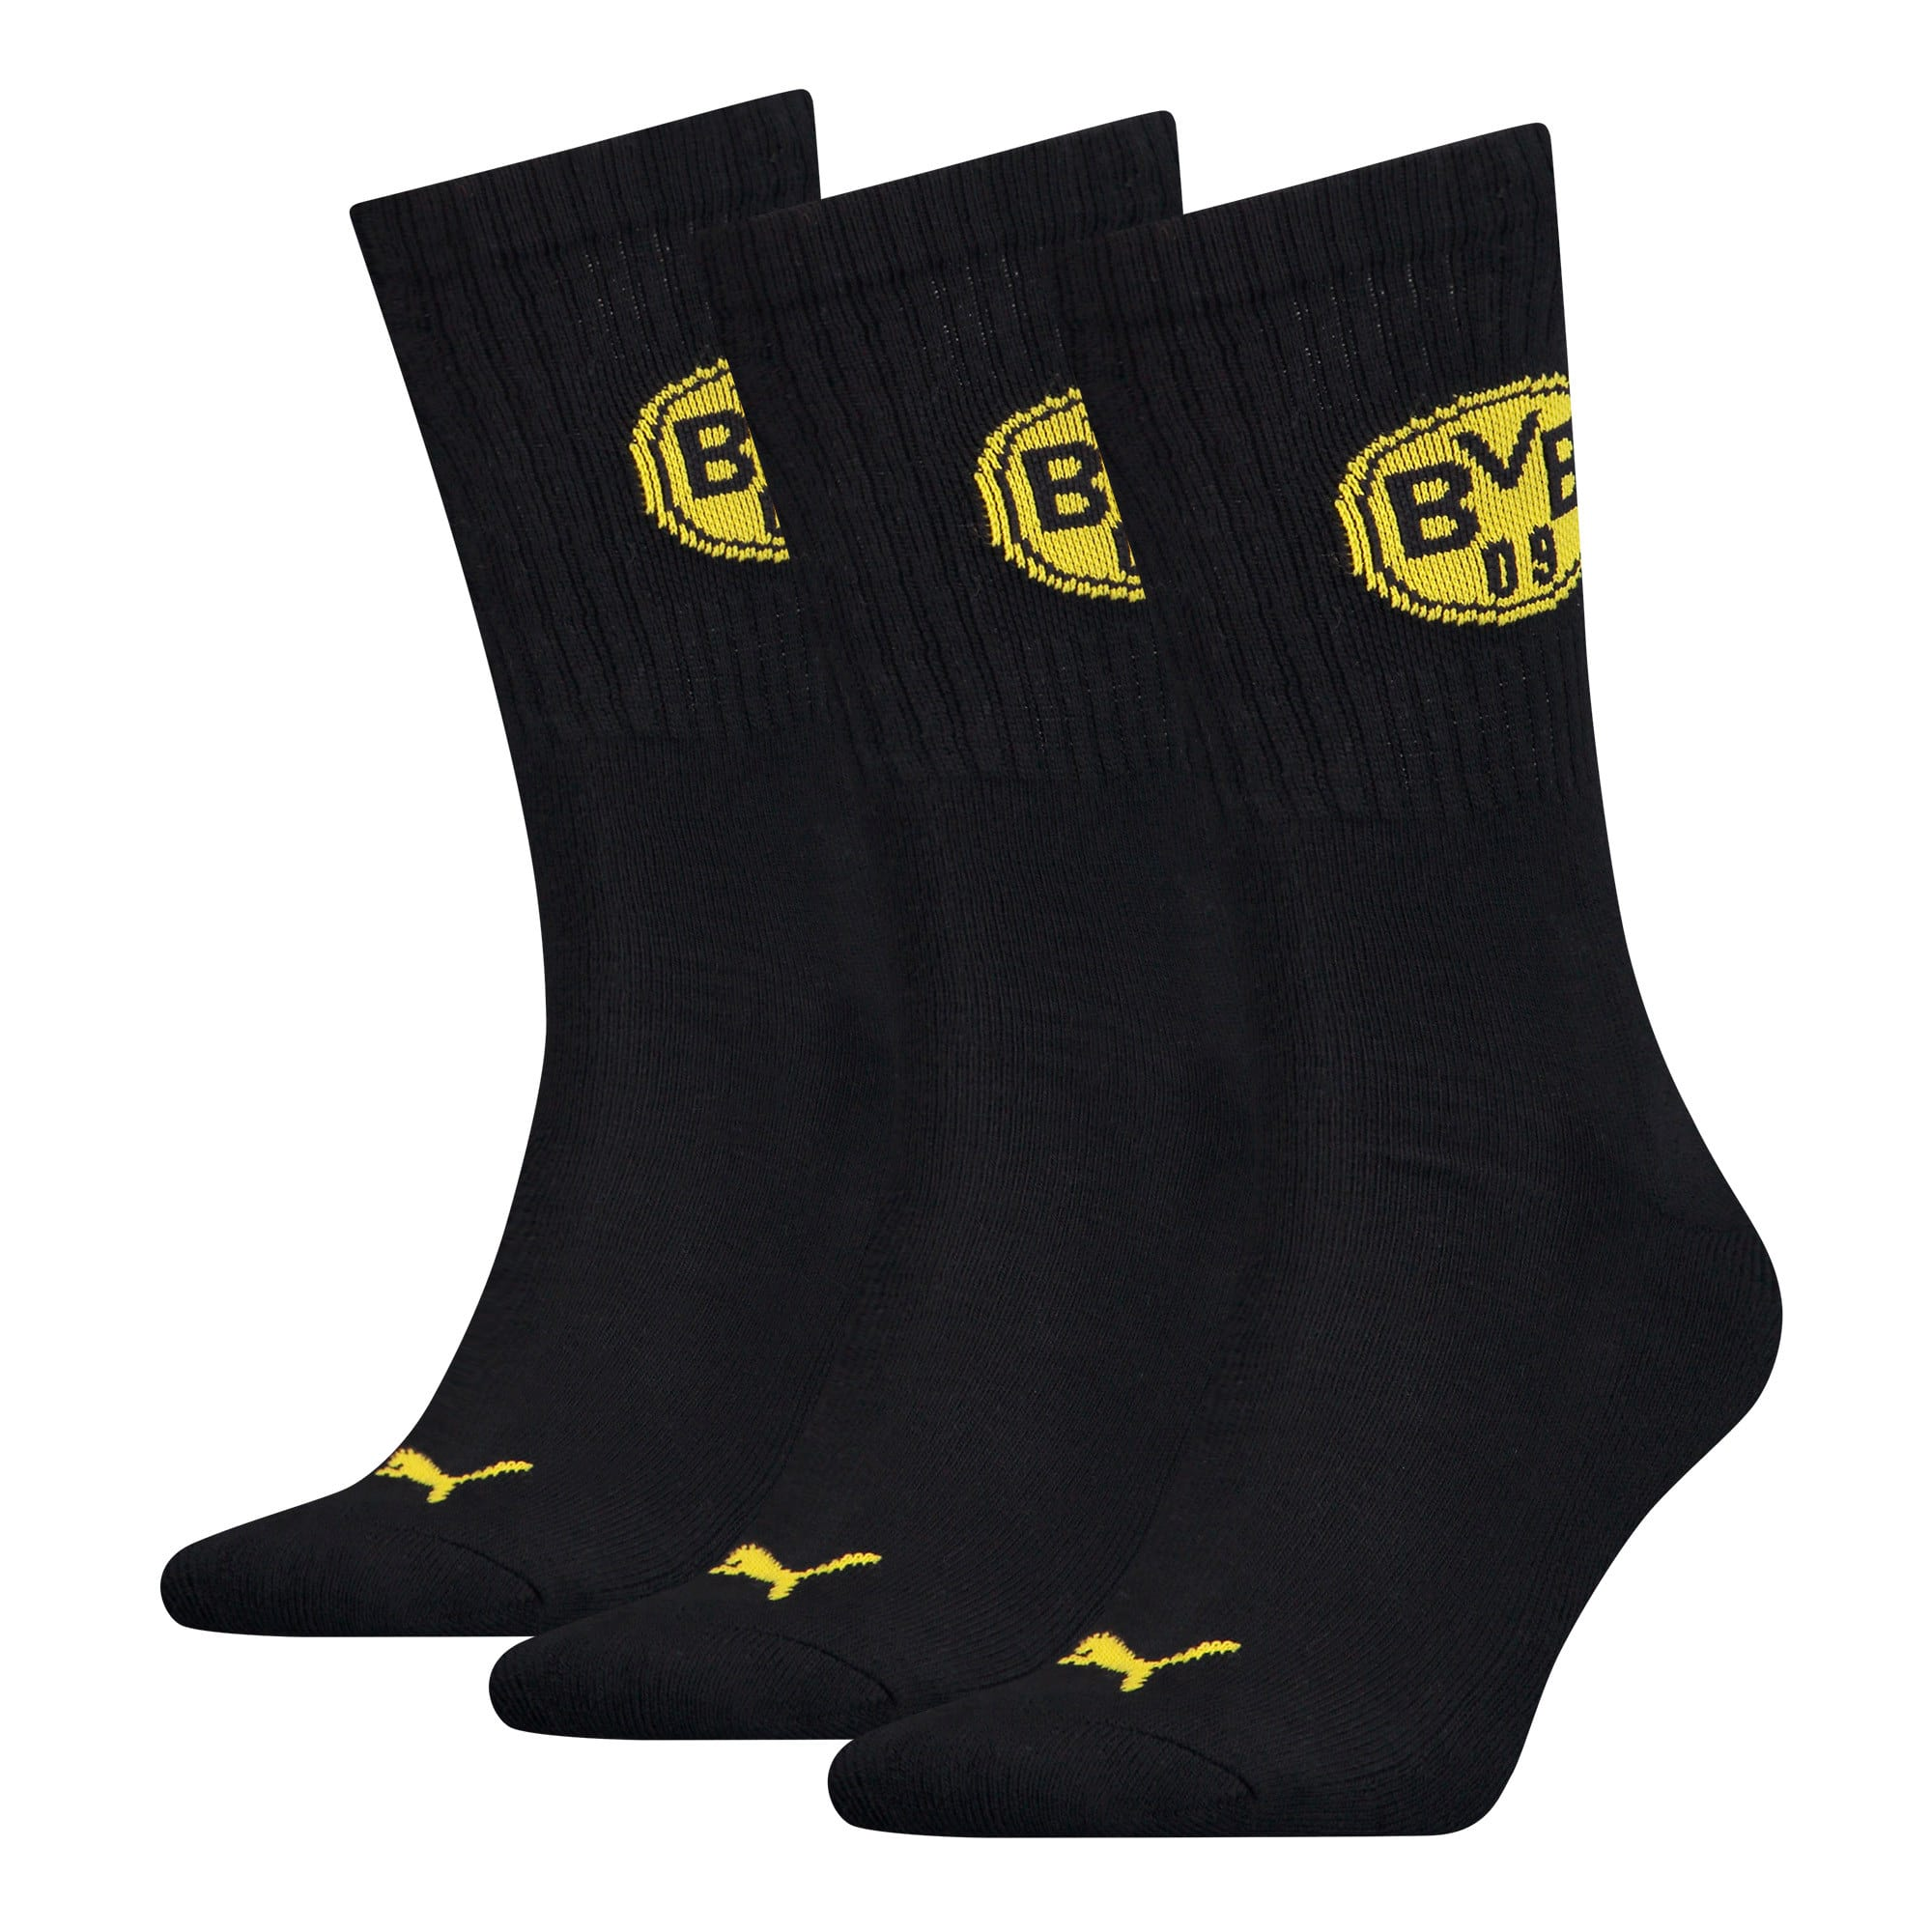 PUMA x BVB Sport Socks 3 Pack, black, large